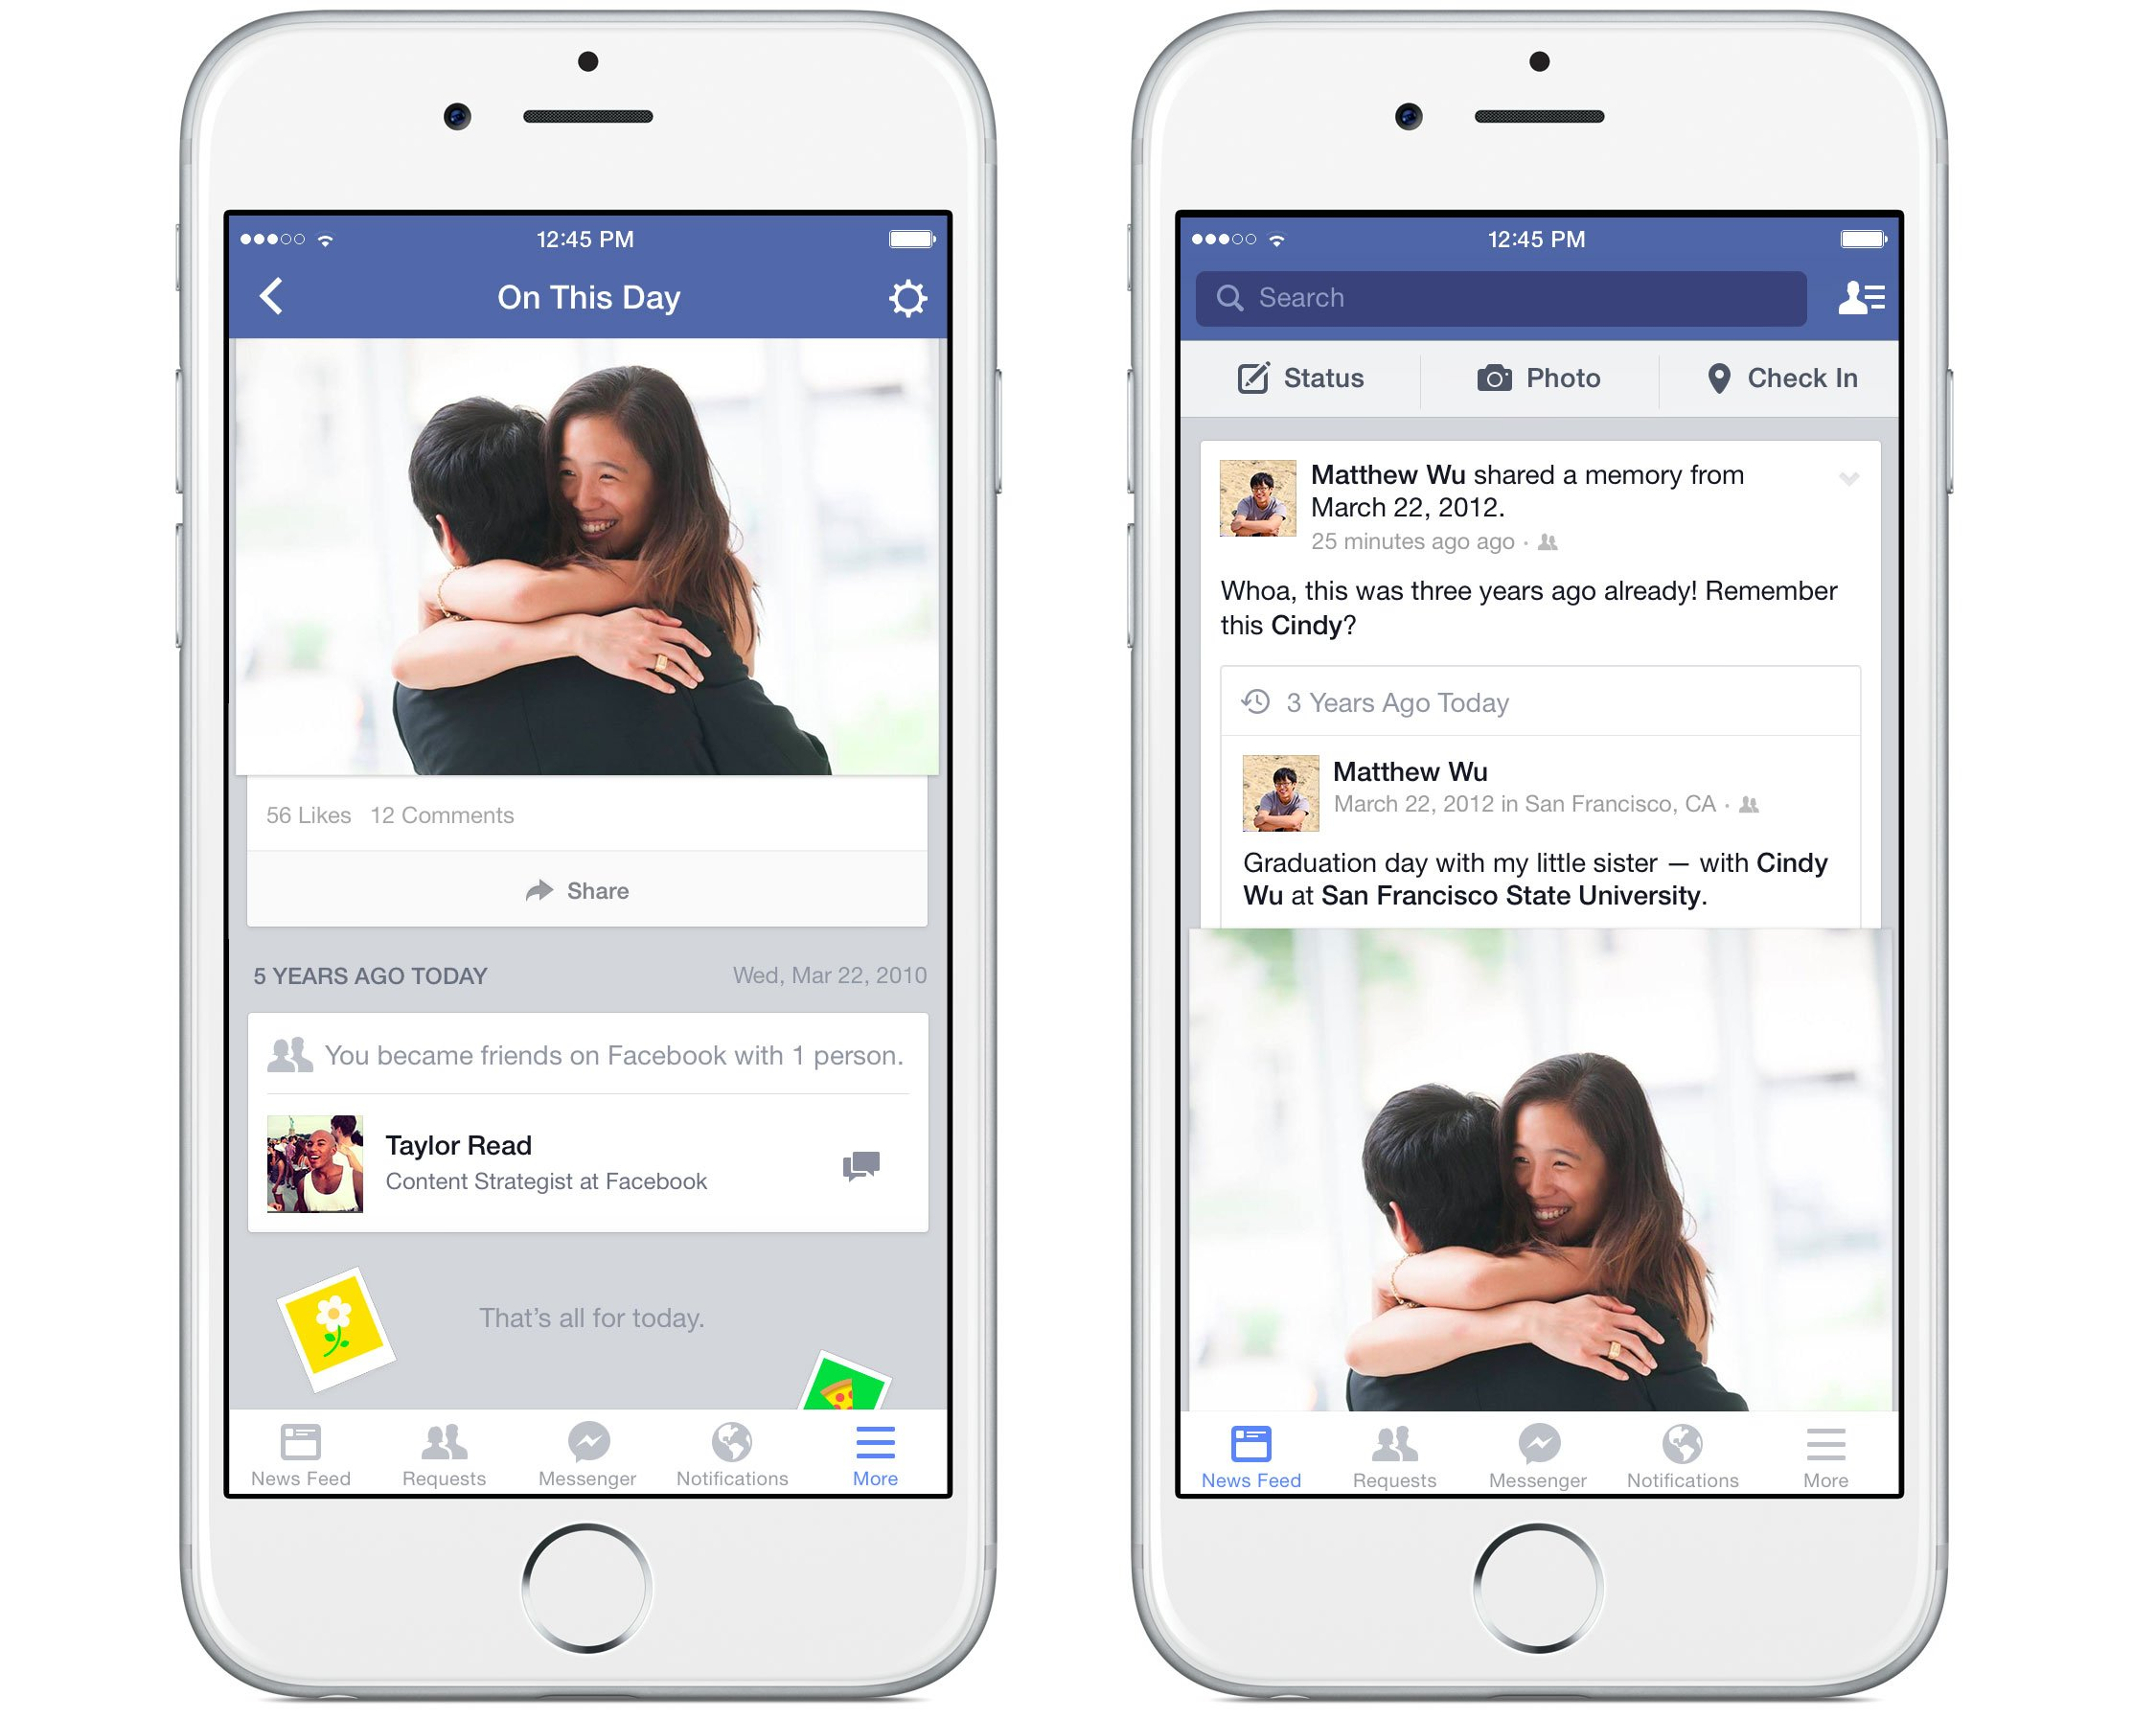 Facebook introduces a new 'On This Day' feature for its iOS app and site